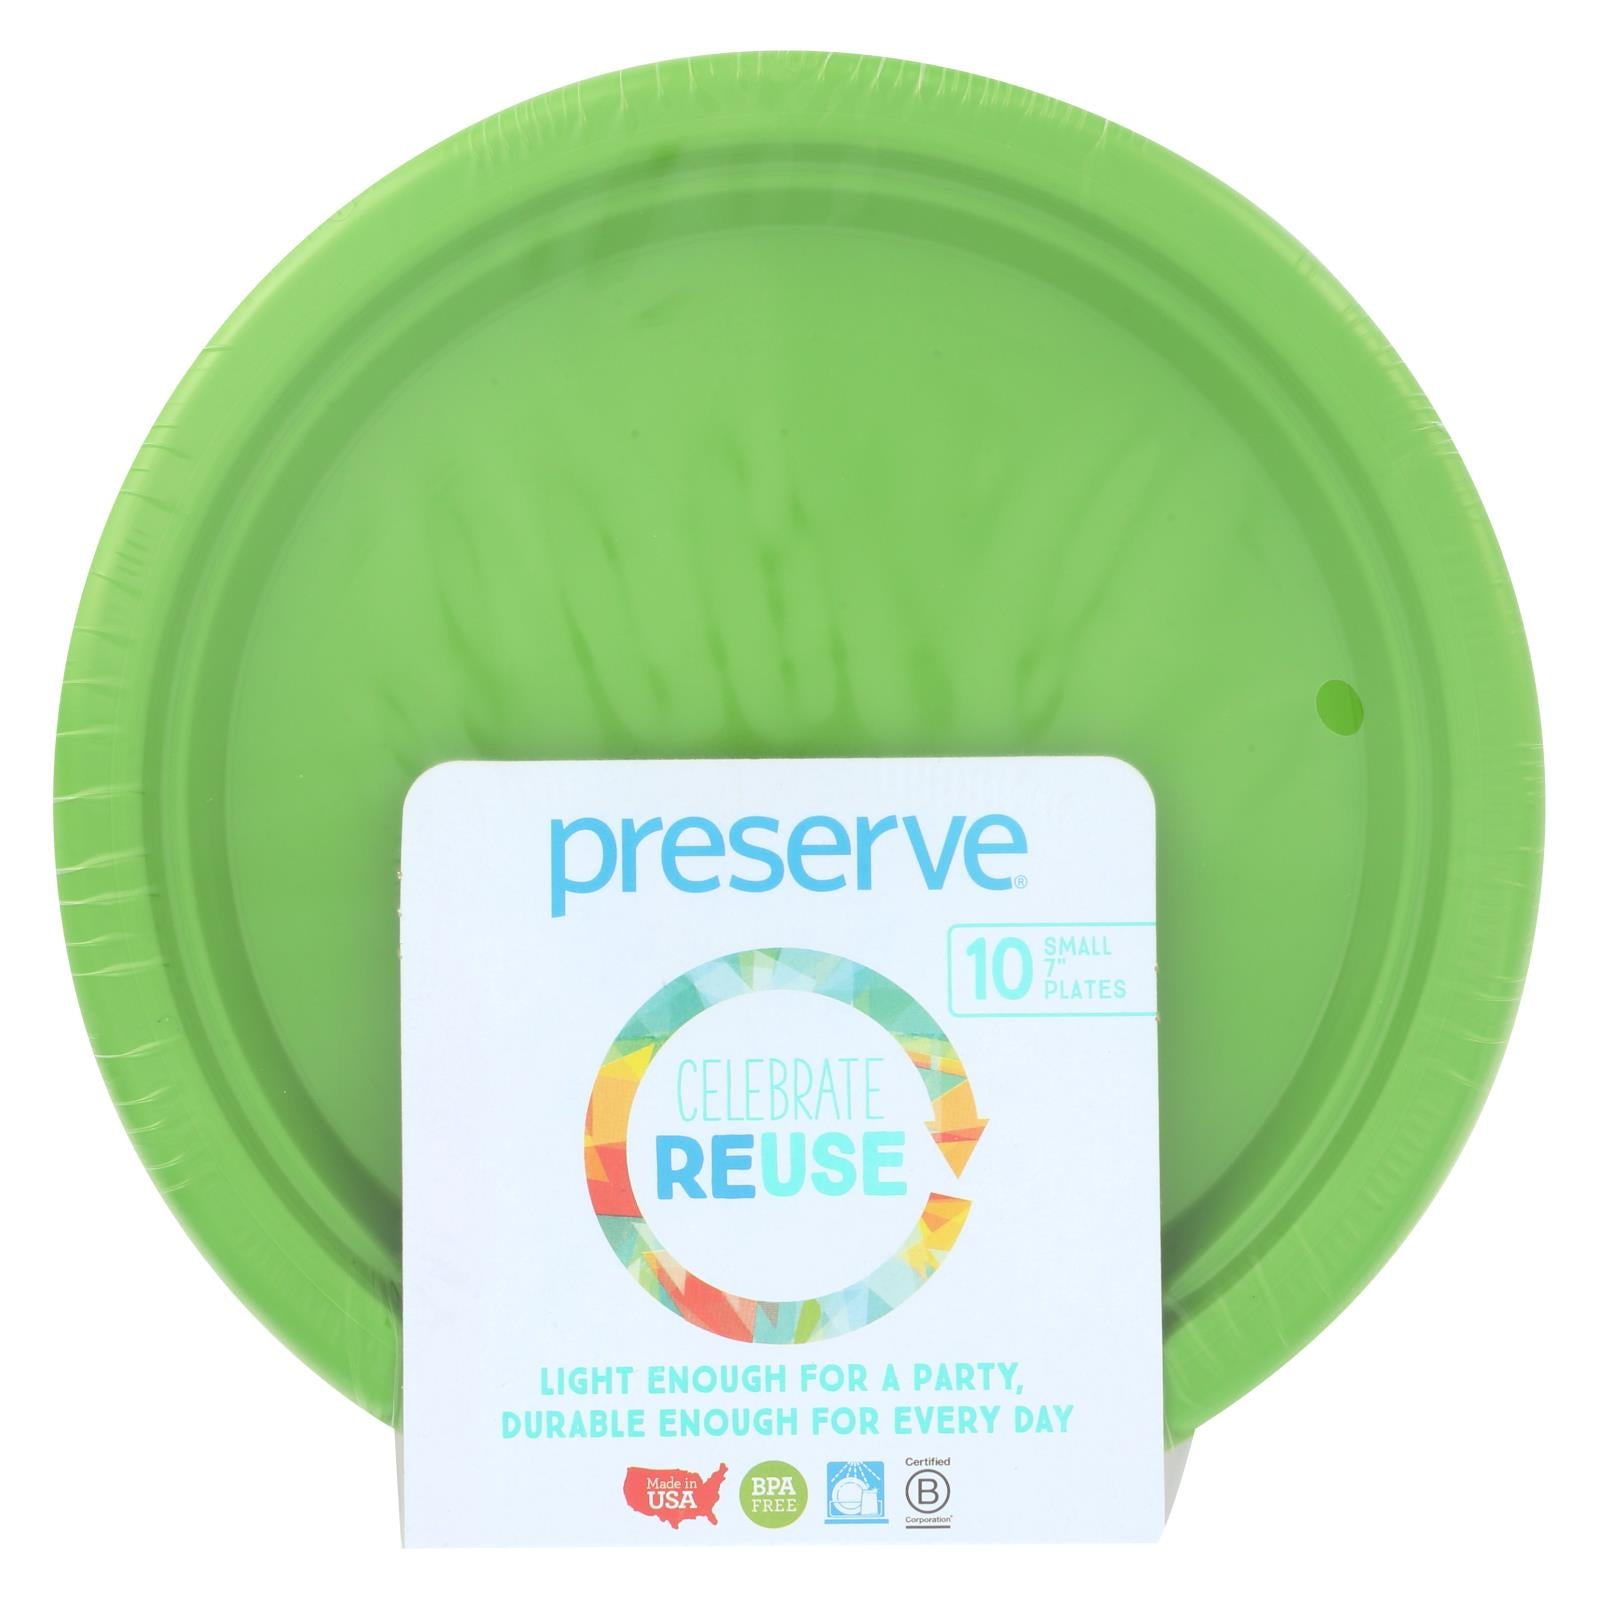 Buy Preserve On the Go Small Reusable Plates - Apple Green - 10 Pack - 7 in - Tableware from Veroeco.com